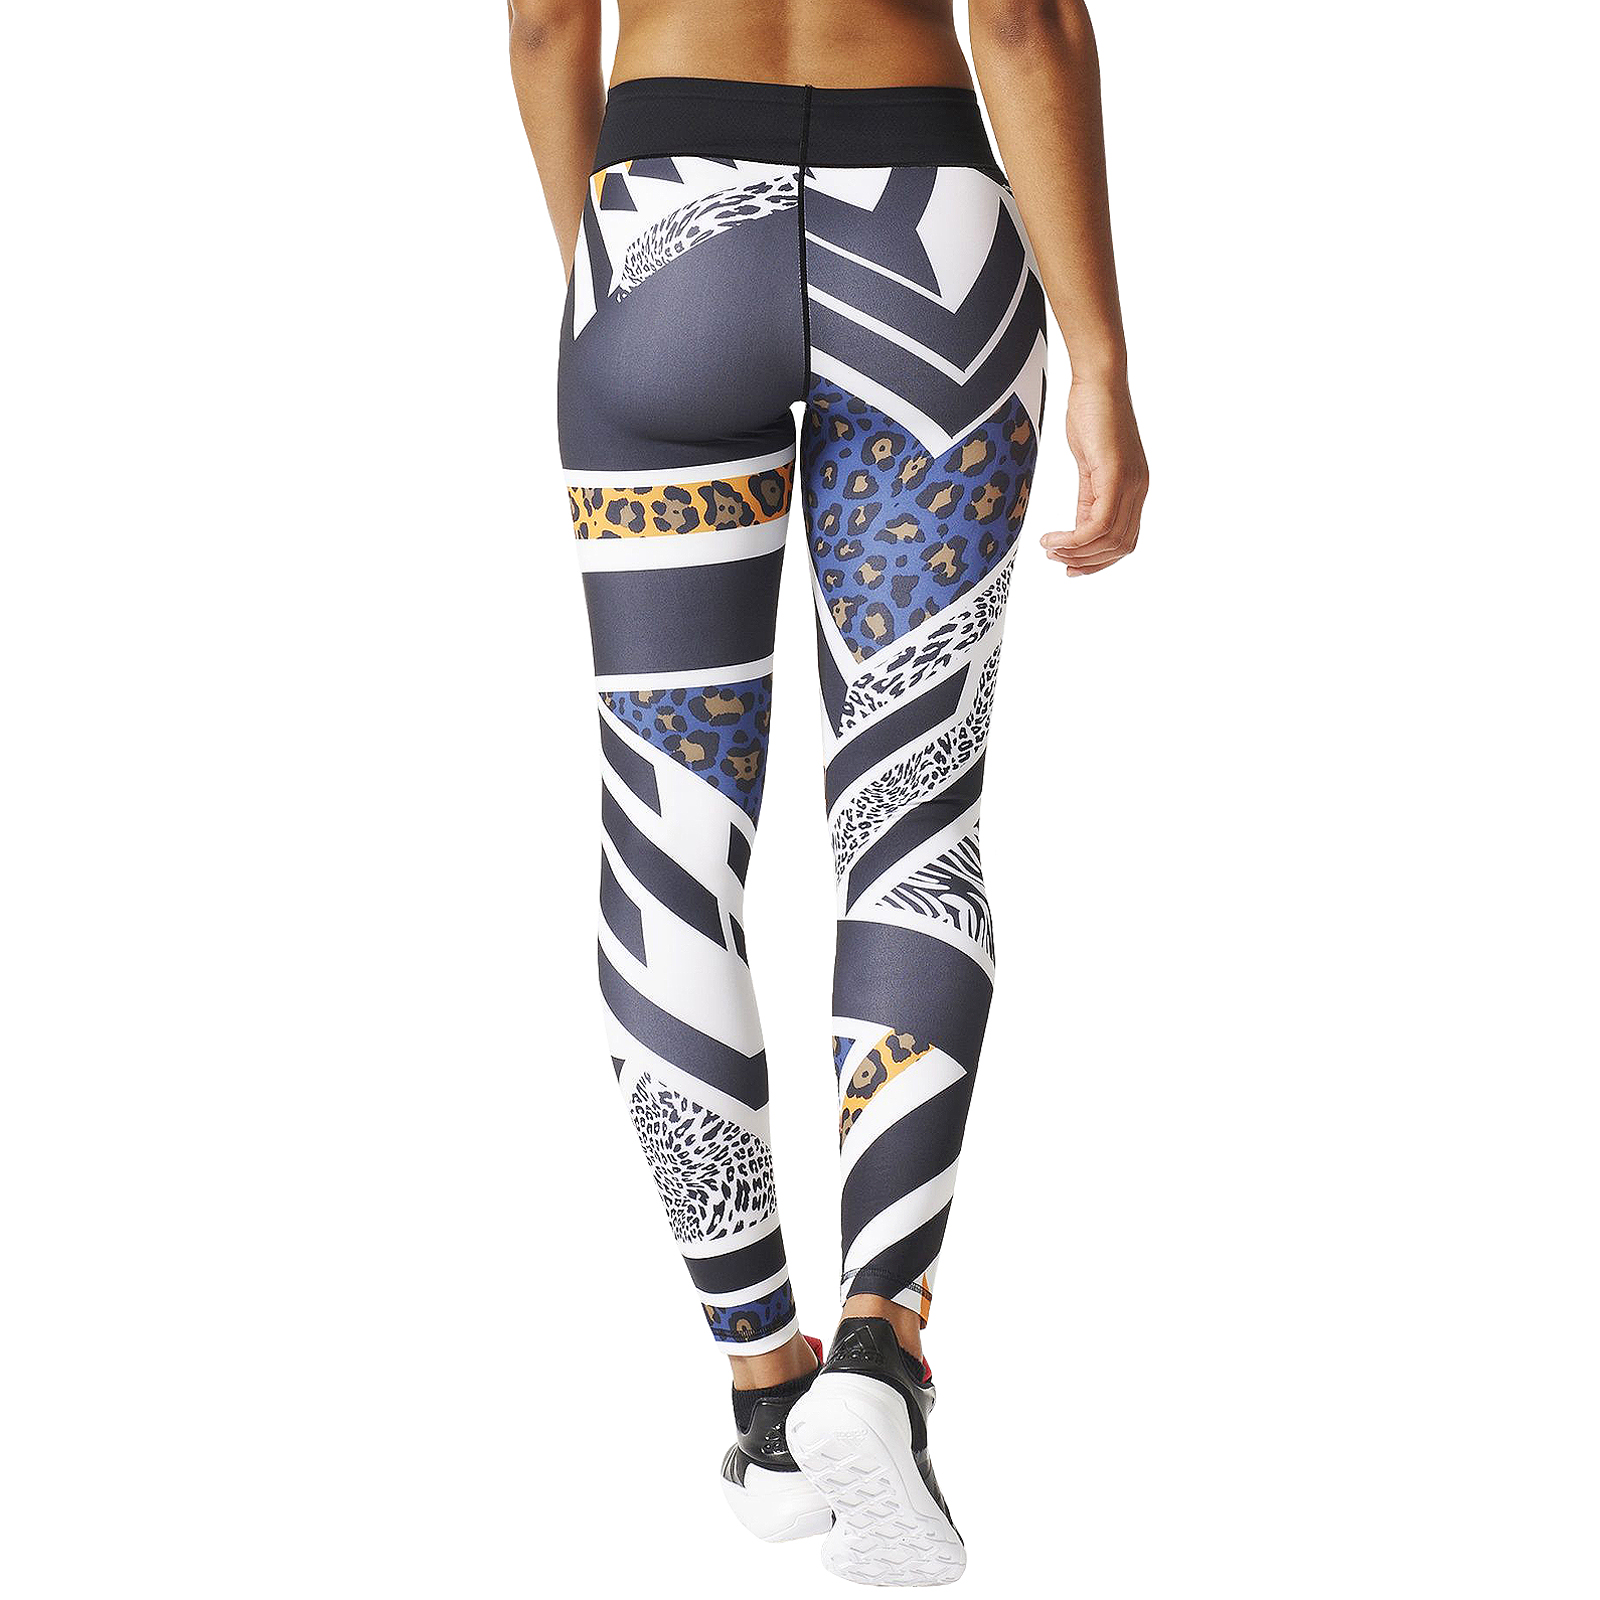 adidas performance womens ultimate fit africa running training leggings tight. Black Bedroom Furniture Sets. Home Design Ideas